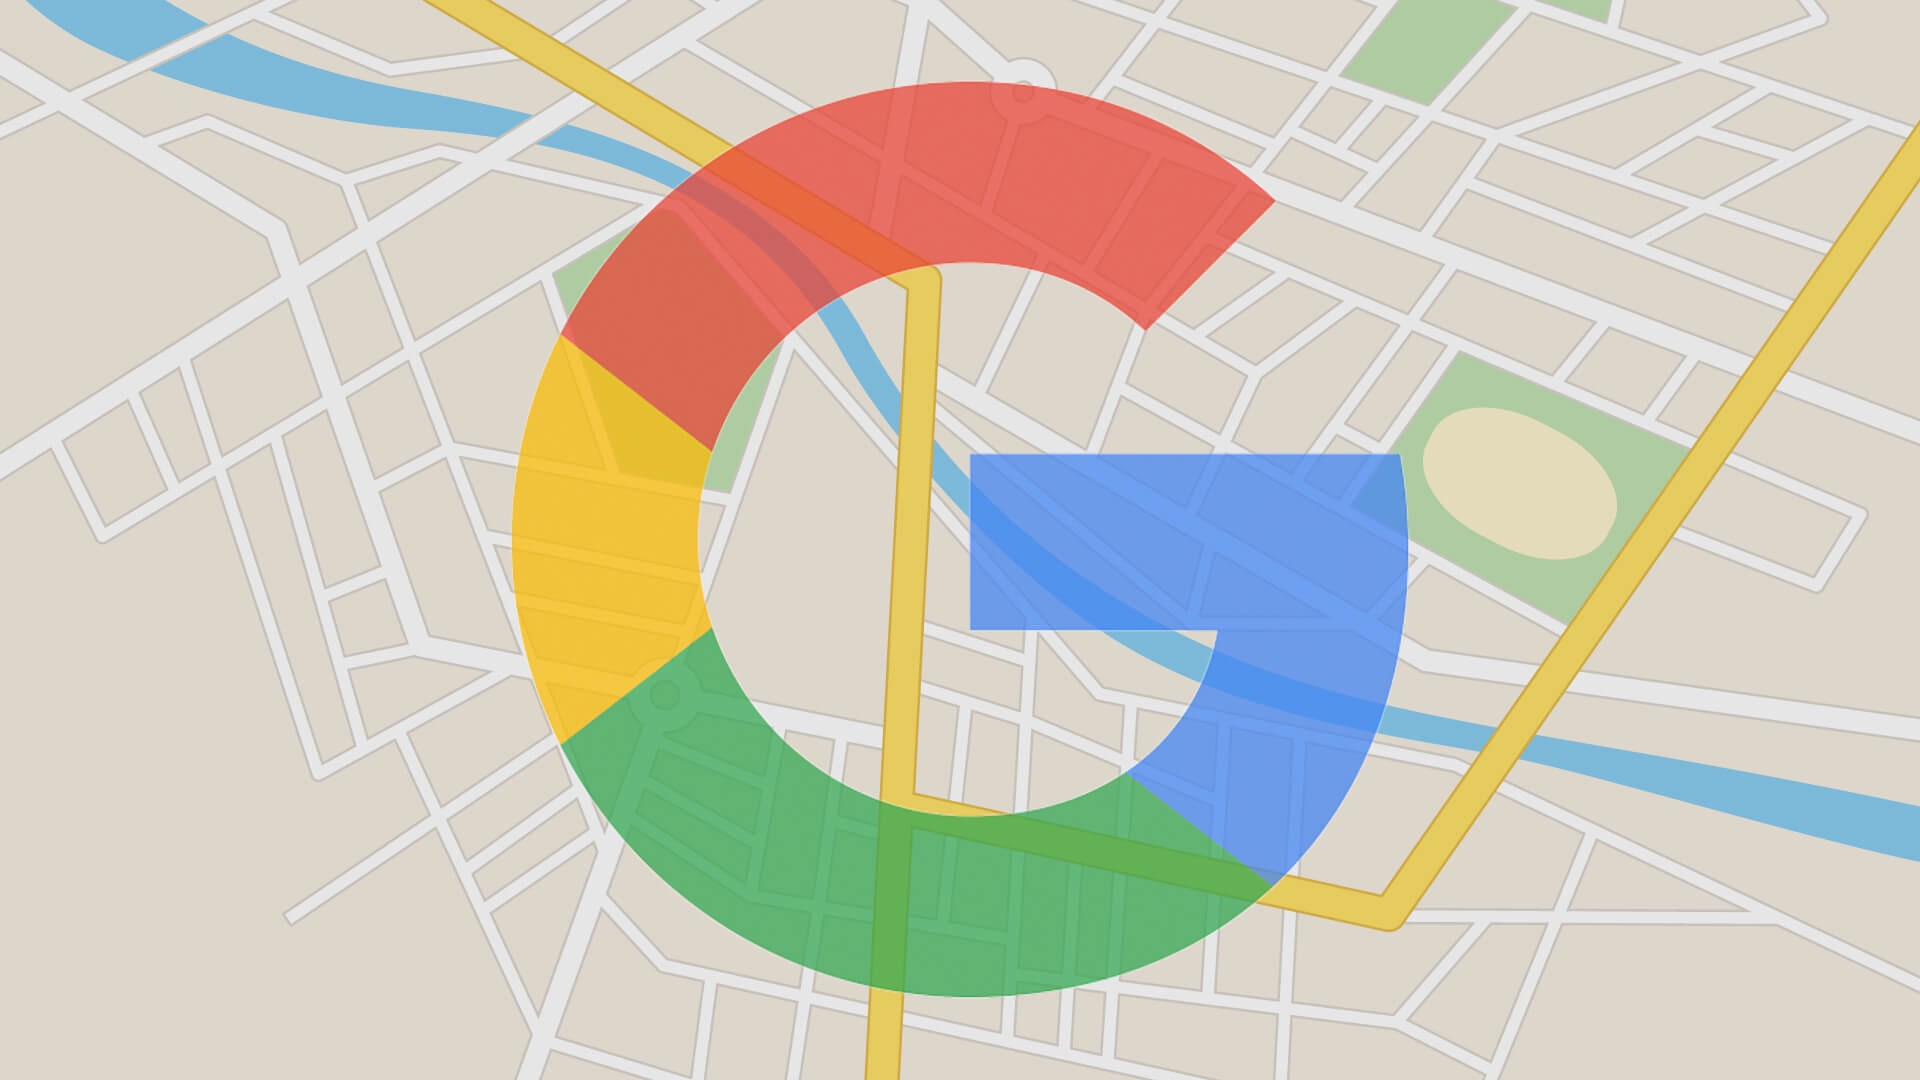 Implement Google Maps in ReactJs – er Noon on gogole maps, google docs, google goggles, goolge maps, amazon fire phone maps, search maps, android maps, microsoft maps, satellite map images with missing or unclear data, msn maps, google search, online maps, yahoo! maps, stanford university maps, iphone maps, web mapping, bing maps, google chrome, gppgle maps, aerial maps, google moon, topographic maps, ipad maps, google map maker, route planning software, google sky, google mars, googie maps, aeronautical maps, road map usa states maps, google voice, waze maps, googlr maps, google translate,